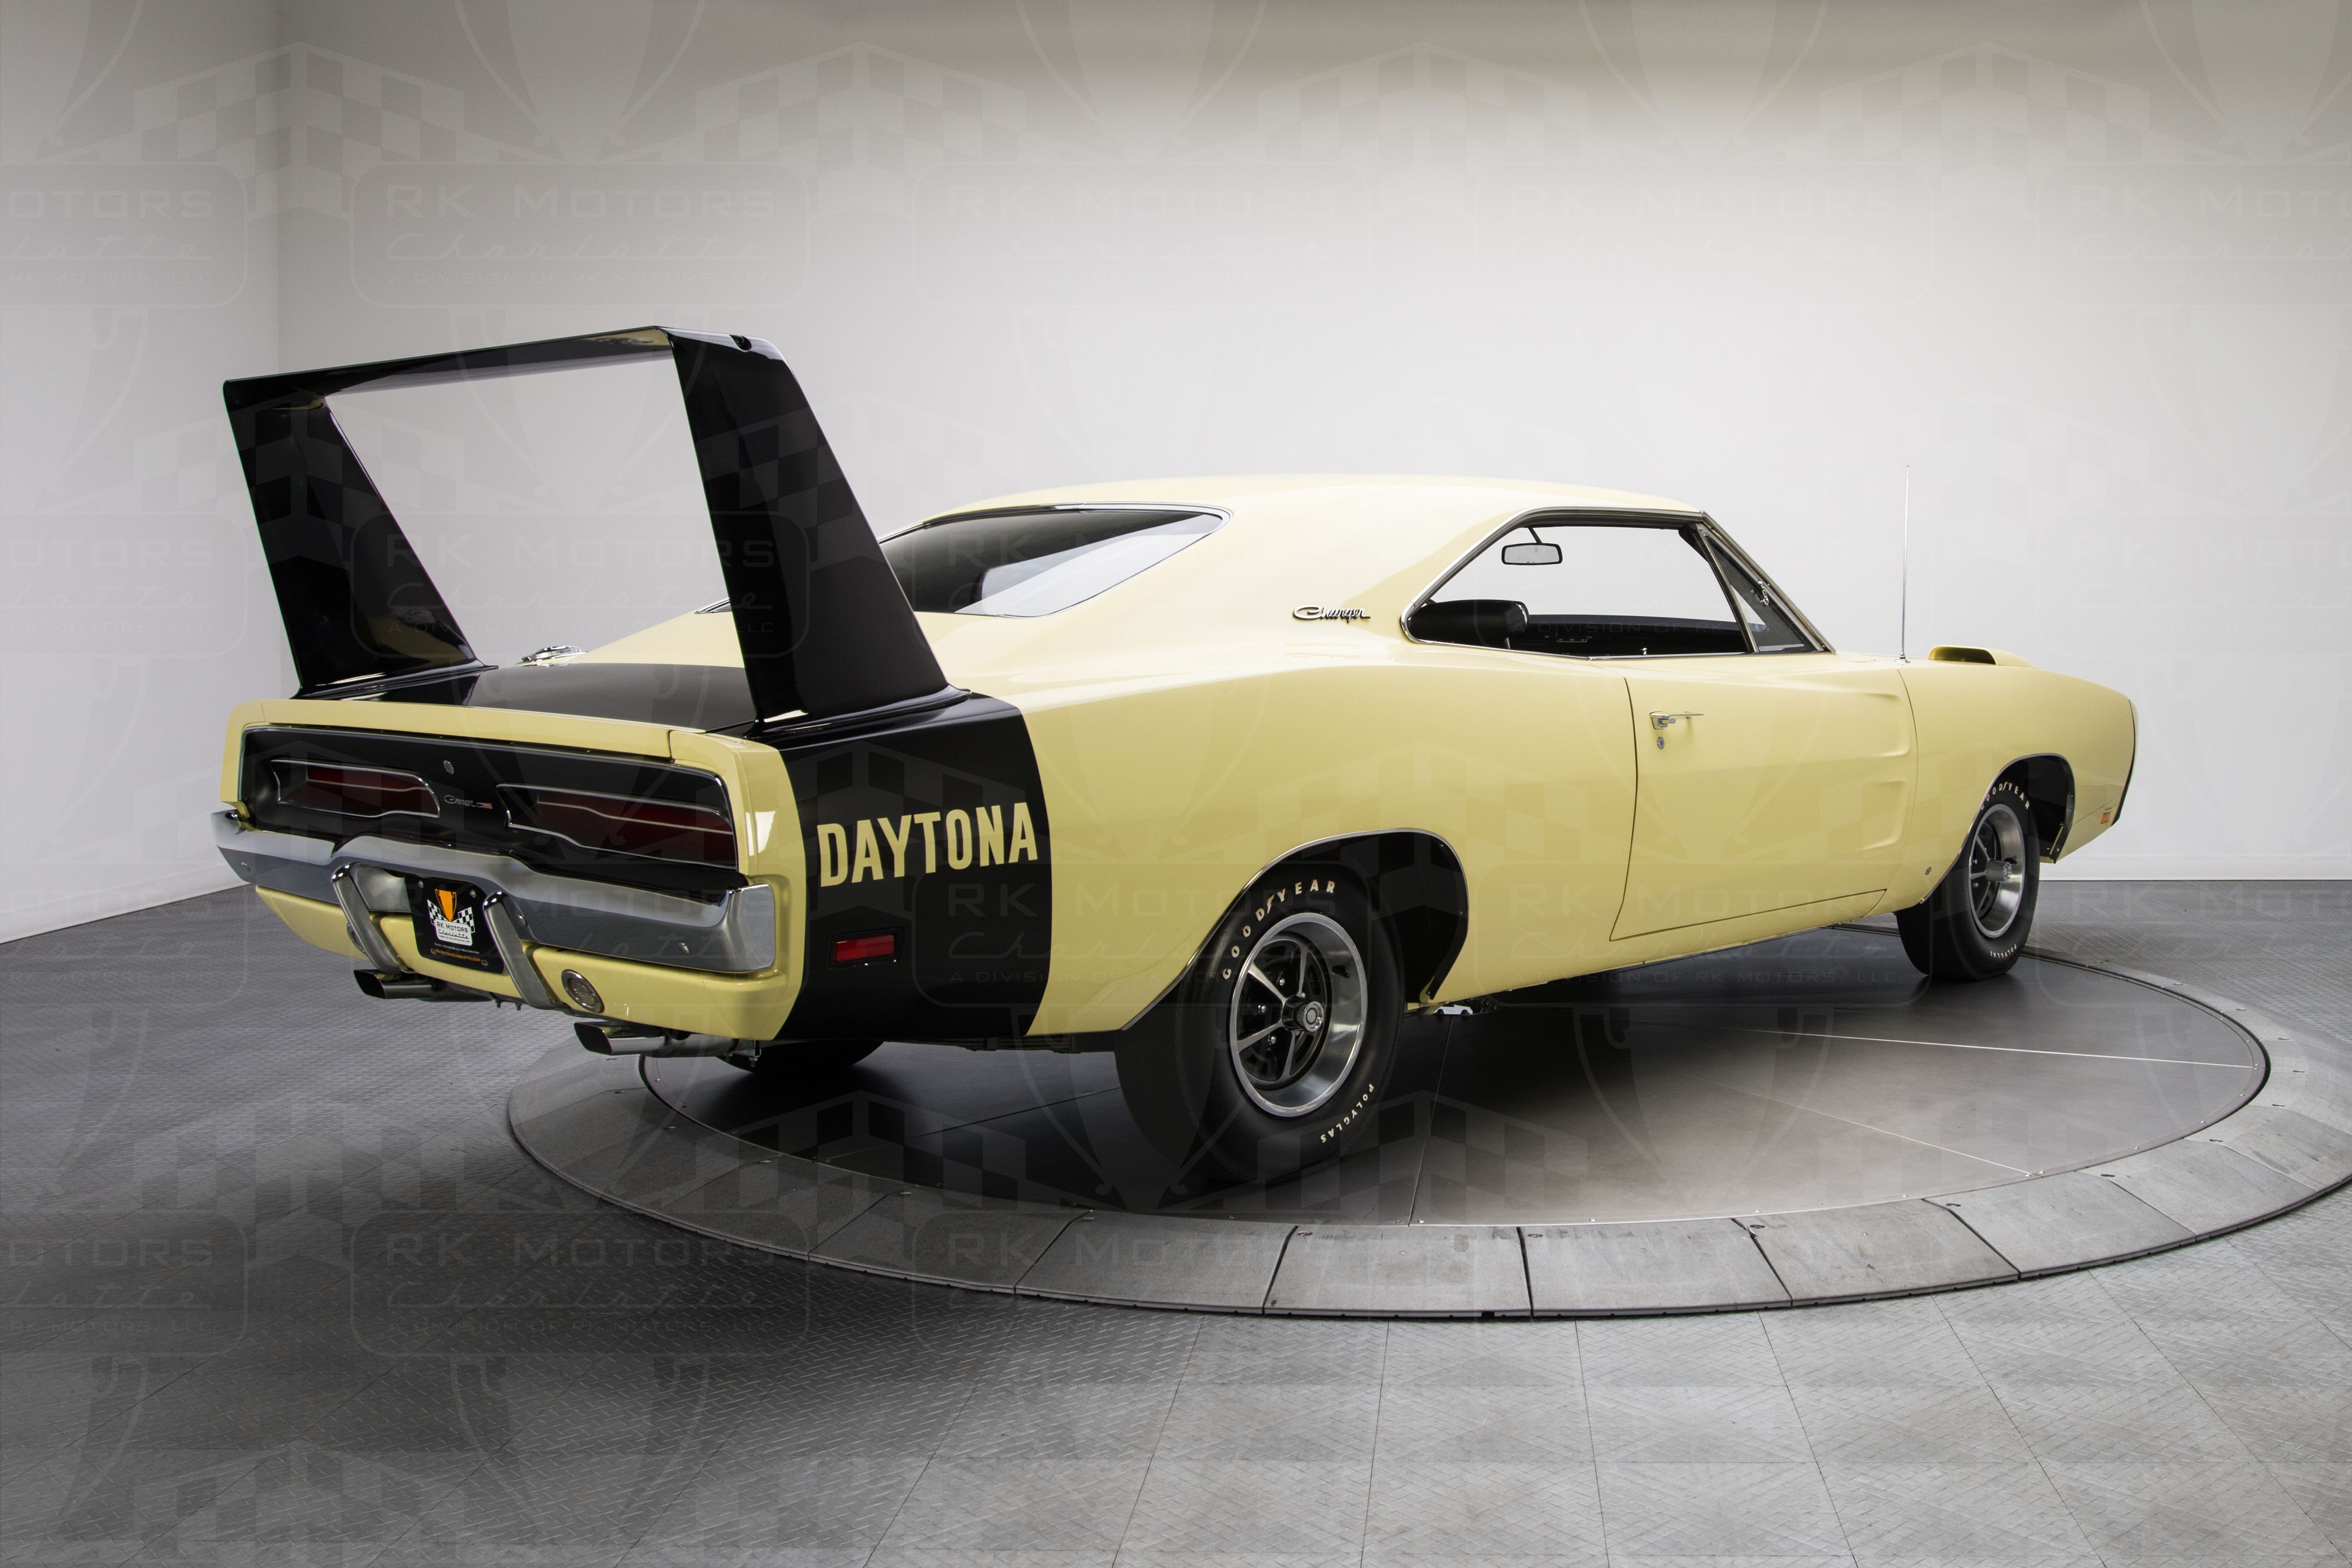 1969 dodge charger daytona yellow for sale dodge challenger pix pinterest 1969 dodge charger daytona dodge charger daytona and 1969 dodge charger